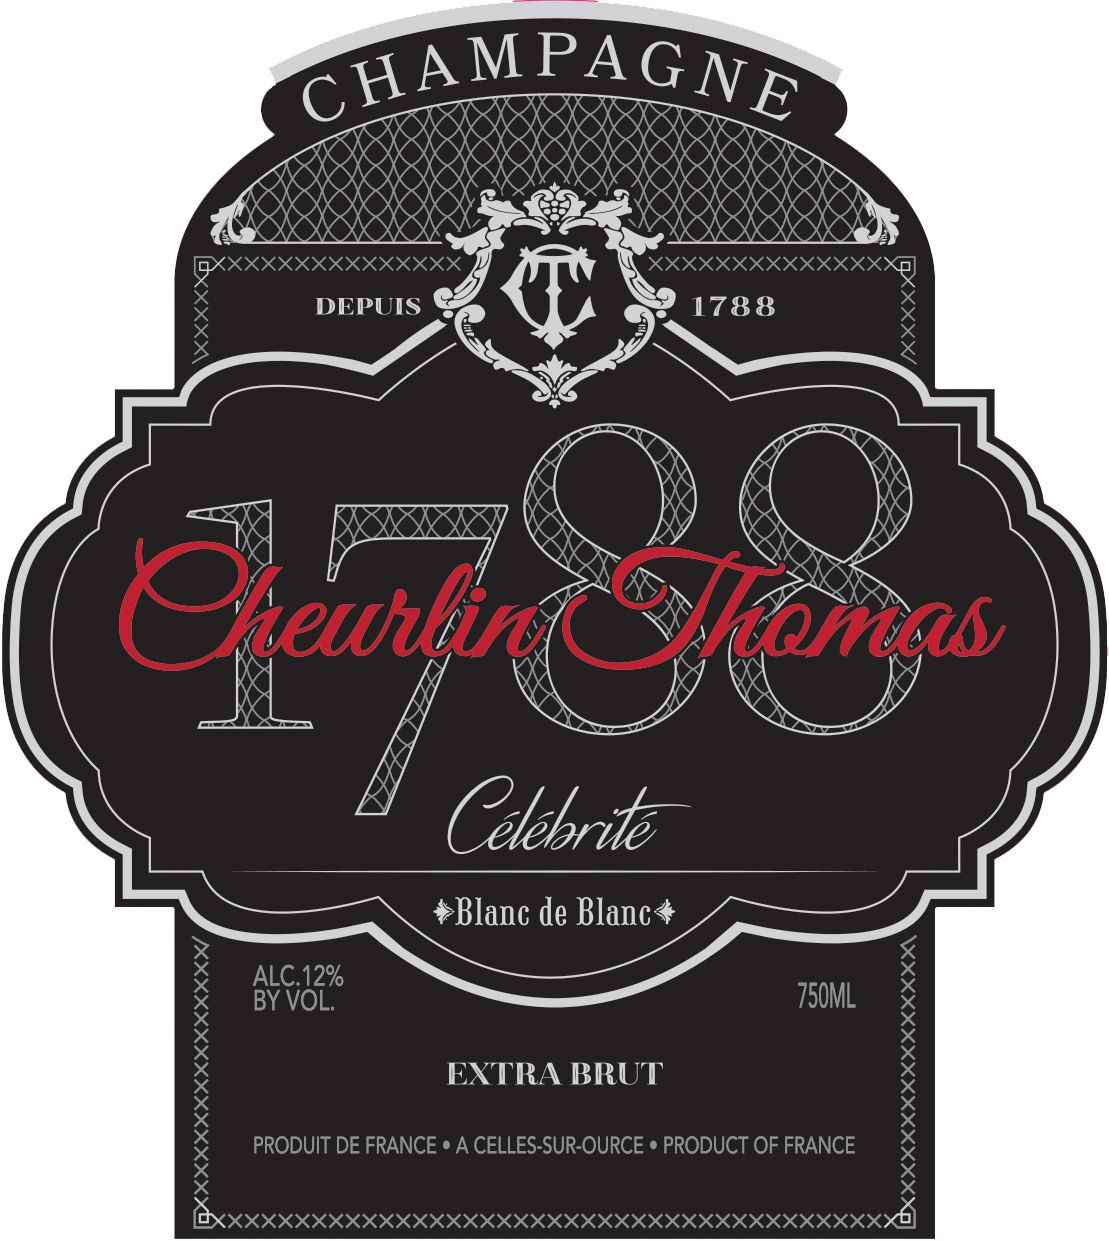 Cheurlin Thomas Celebrite Blanc de Blanc Front Label